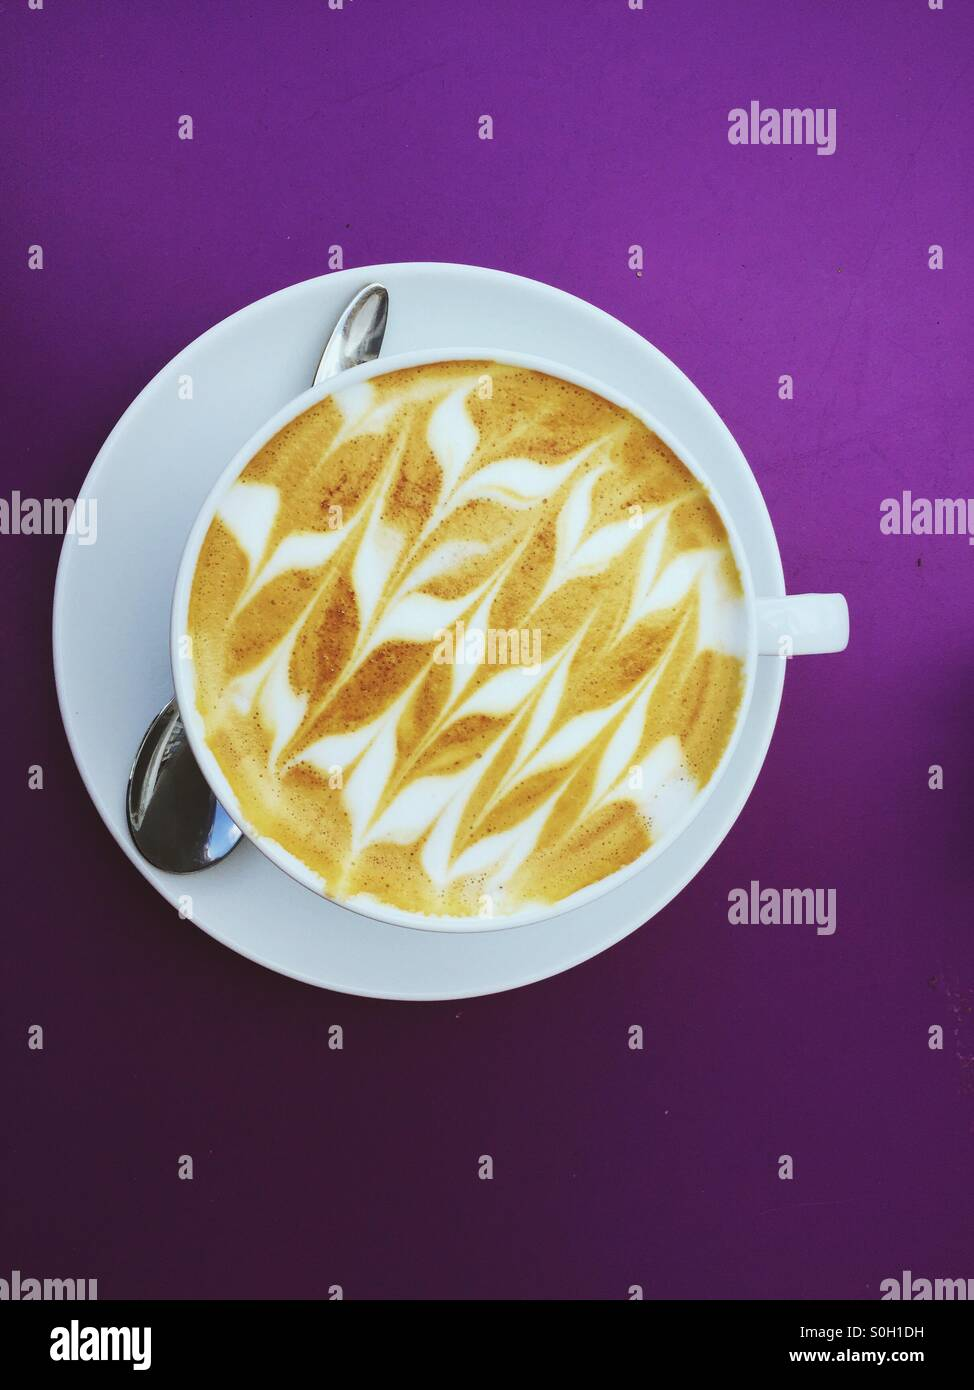 Top view of cup of coffee with  saucer and spoon on purple background. - Stock Image